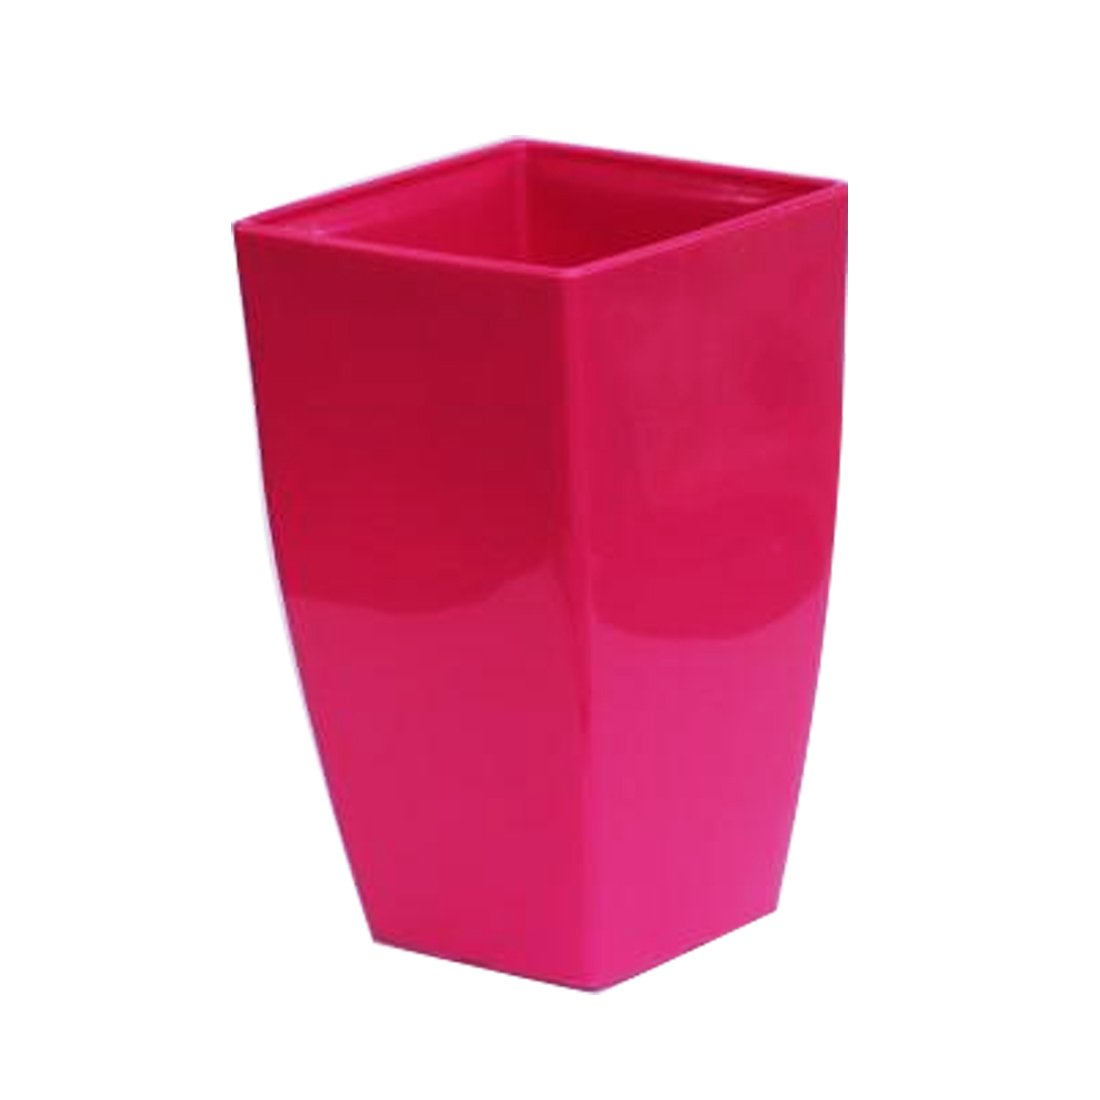 Vertical Planter - Small Pink  Height x Width x Breadth 20 x 12 x 12 cm